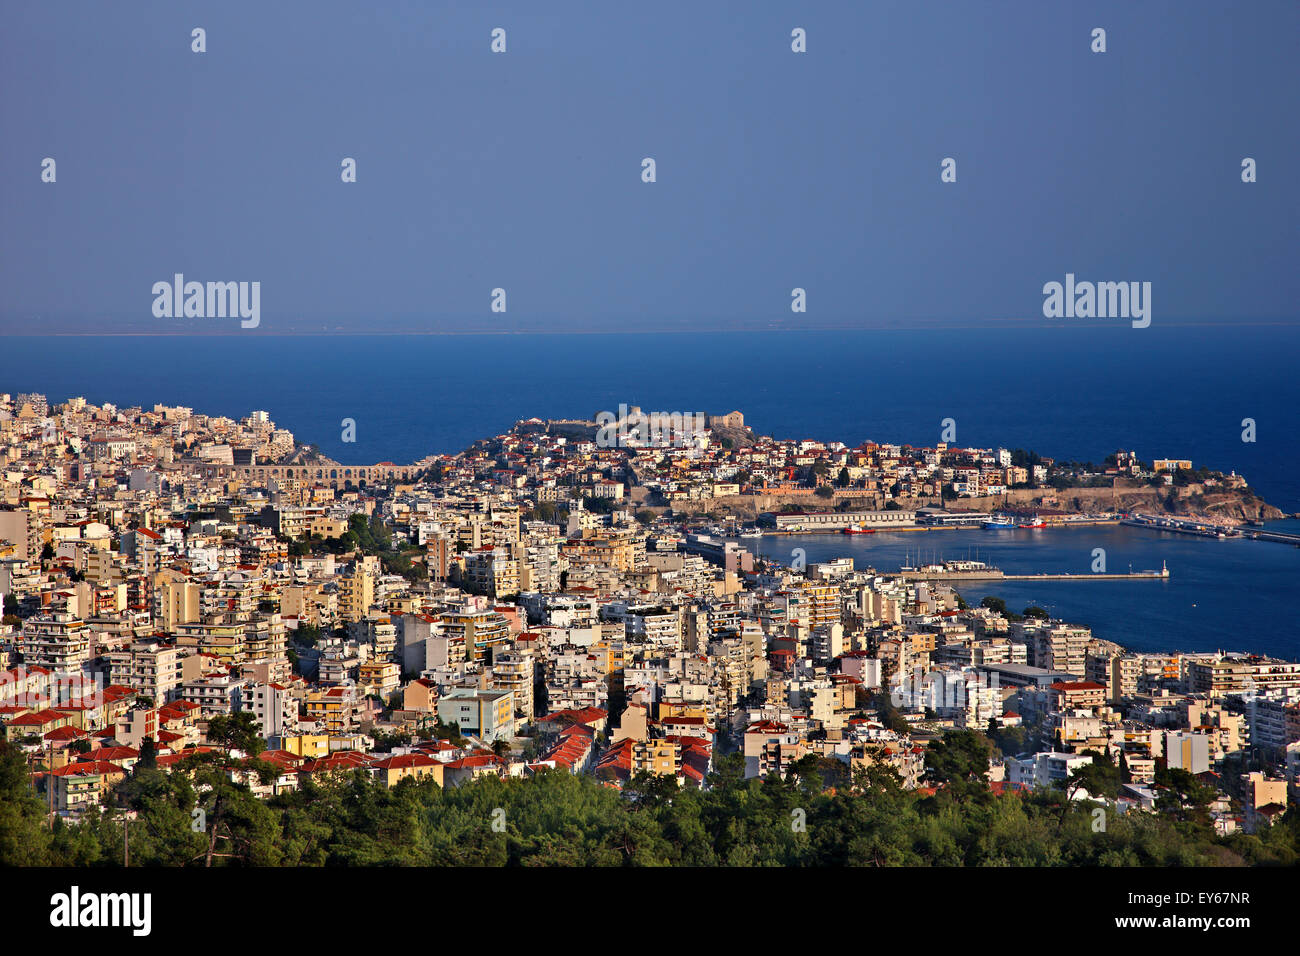 Panoramic view of Kavala city, Macedonia, Greece. You can see its port and the castle above the old part of the - Stock Image